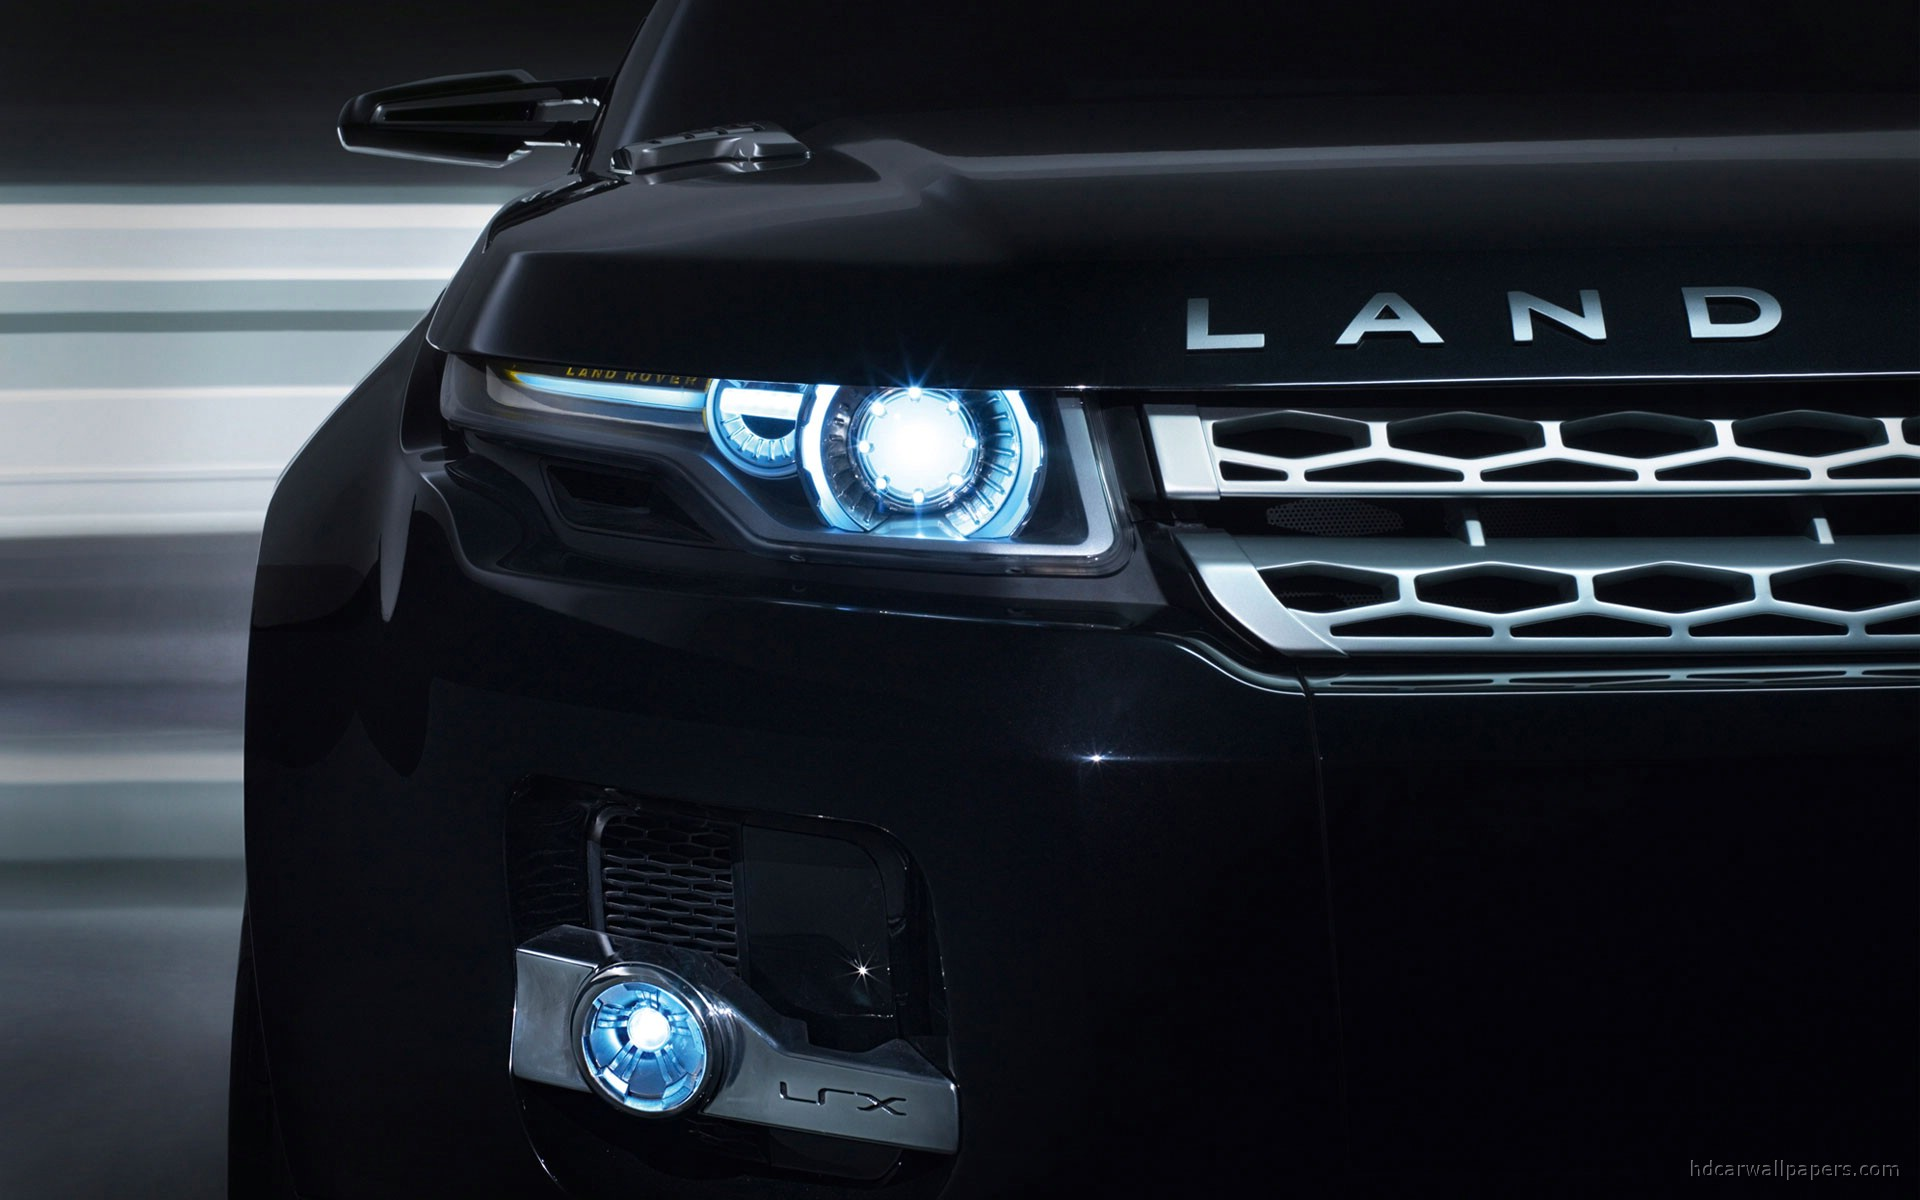 Land Rover LRX Concept Black 8 151.55 Kb